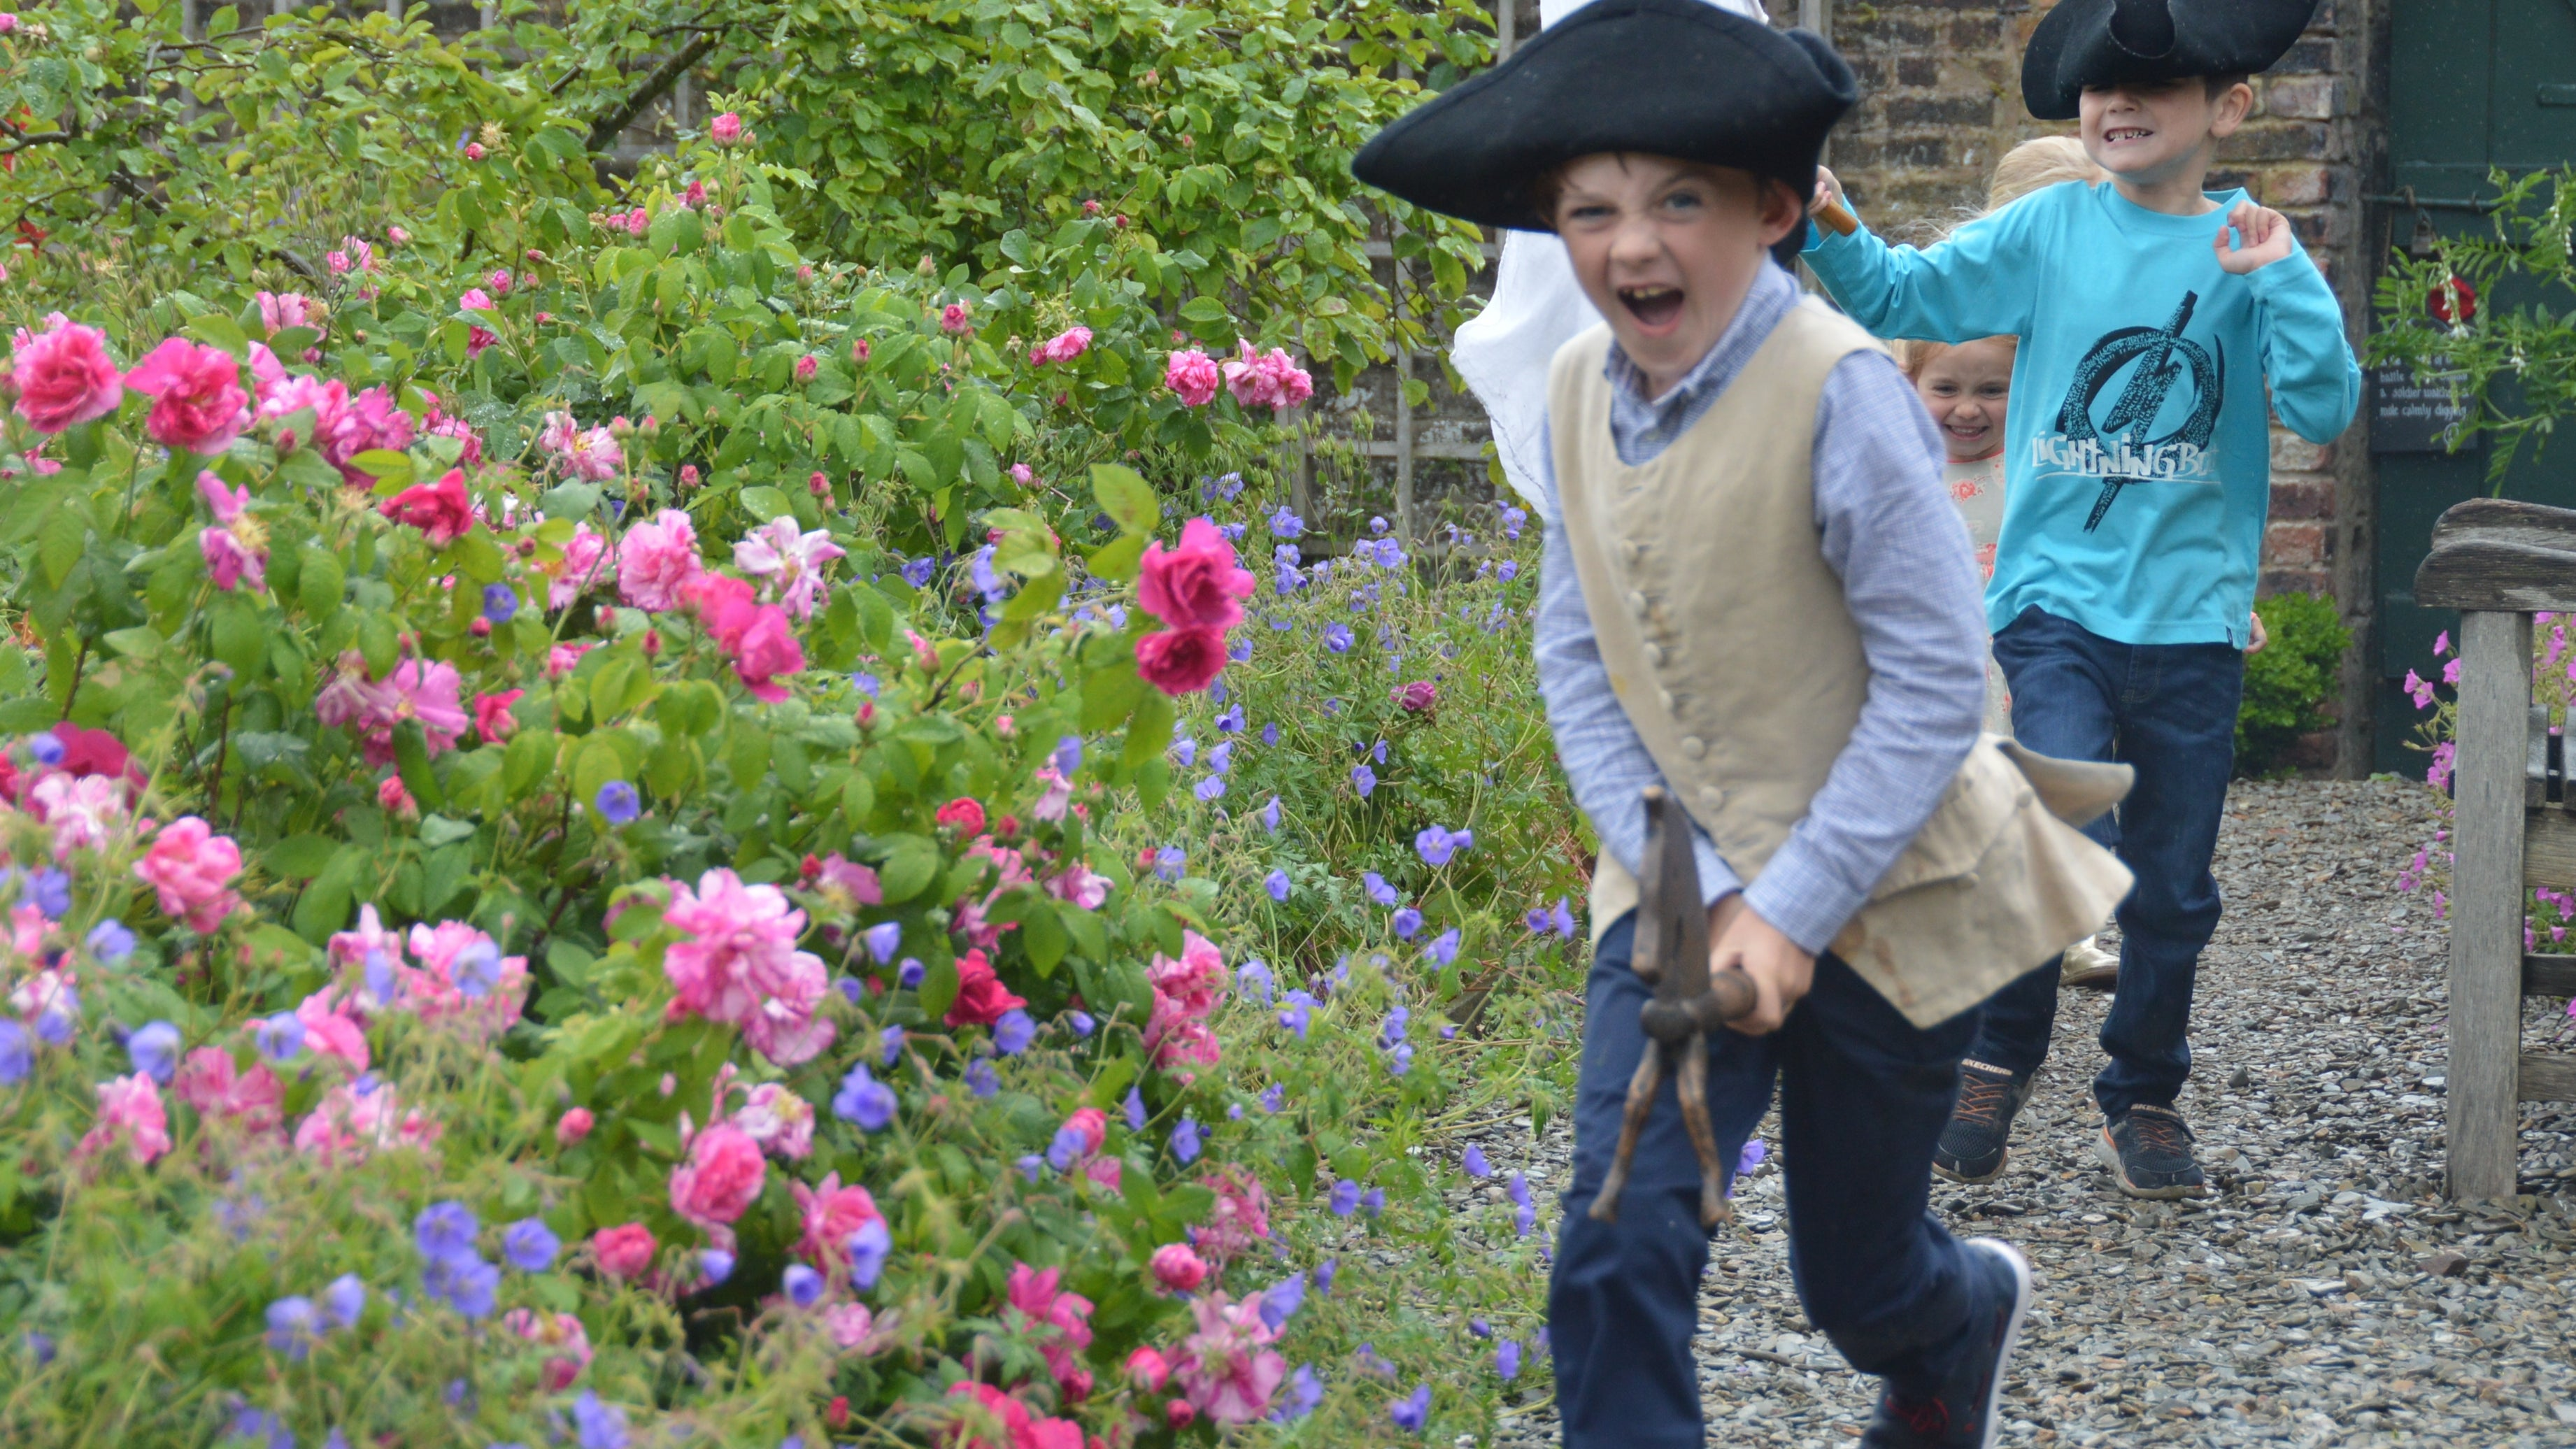 Children wearing tricorn hats running about in a garden